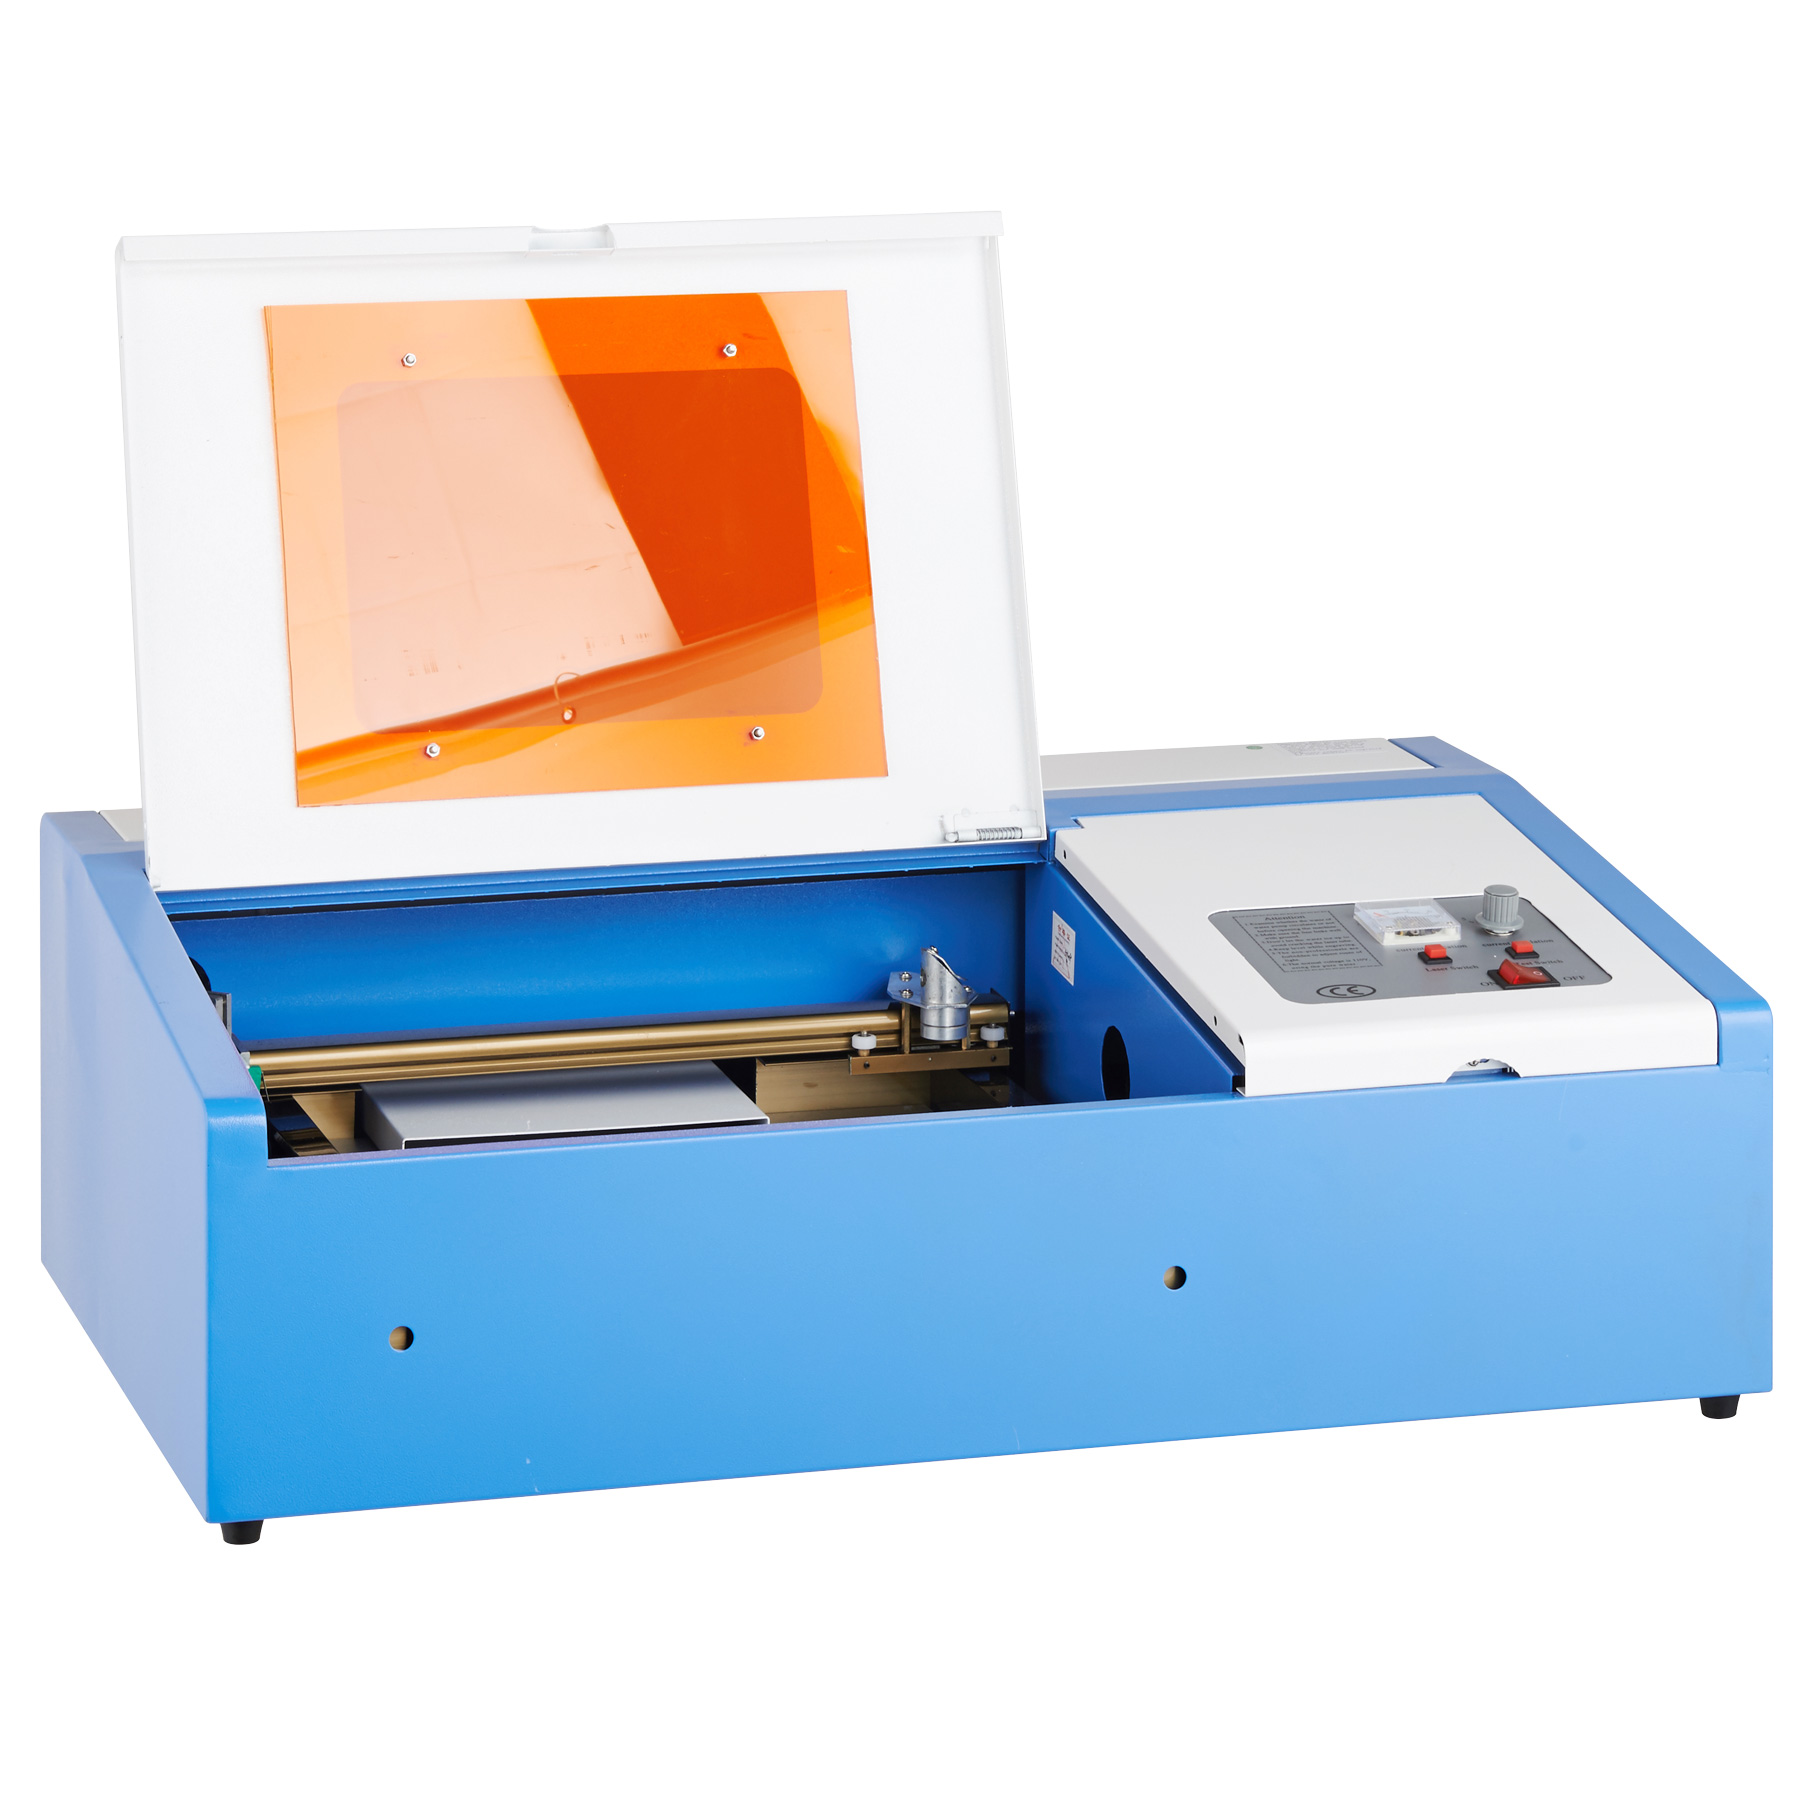 "40W 12""x 8"" CO2 Laser Engraving Machine Pro-Tech Engraver Cutter with Exhaust Fan USB Port"